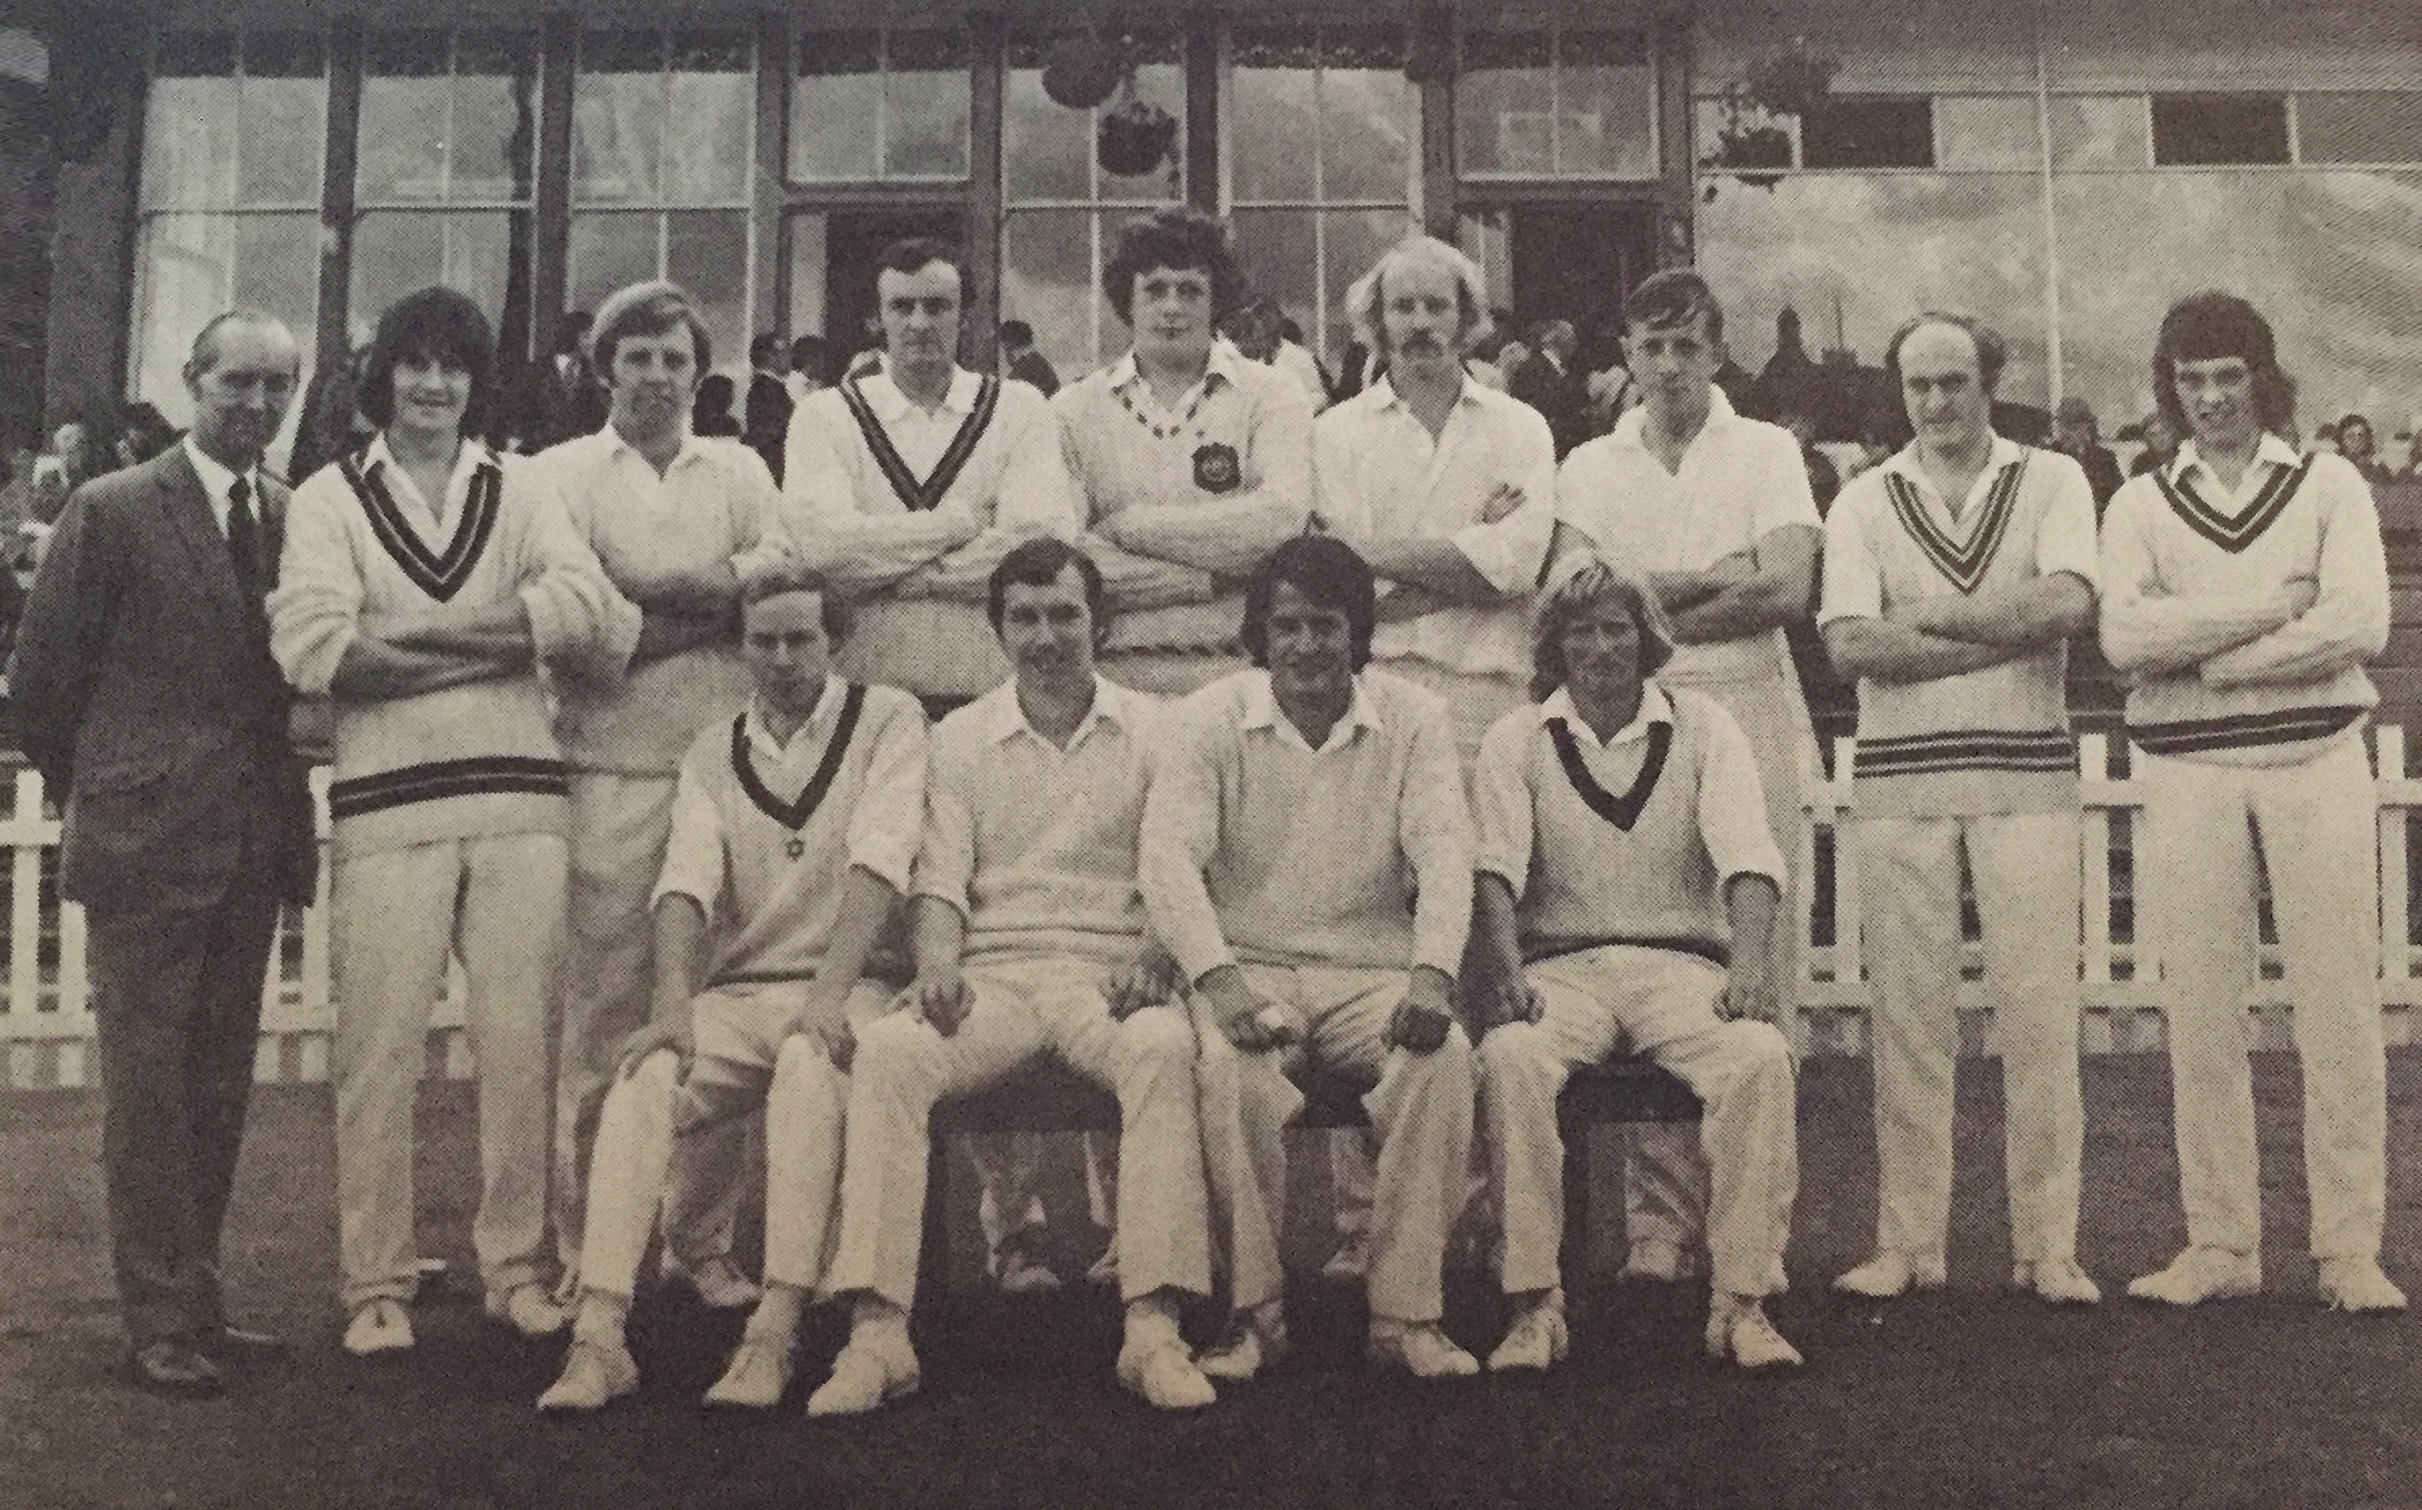 1974 Rothman Quaich winners, including Scotland players Dave Loudon and Henry Fairweather.